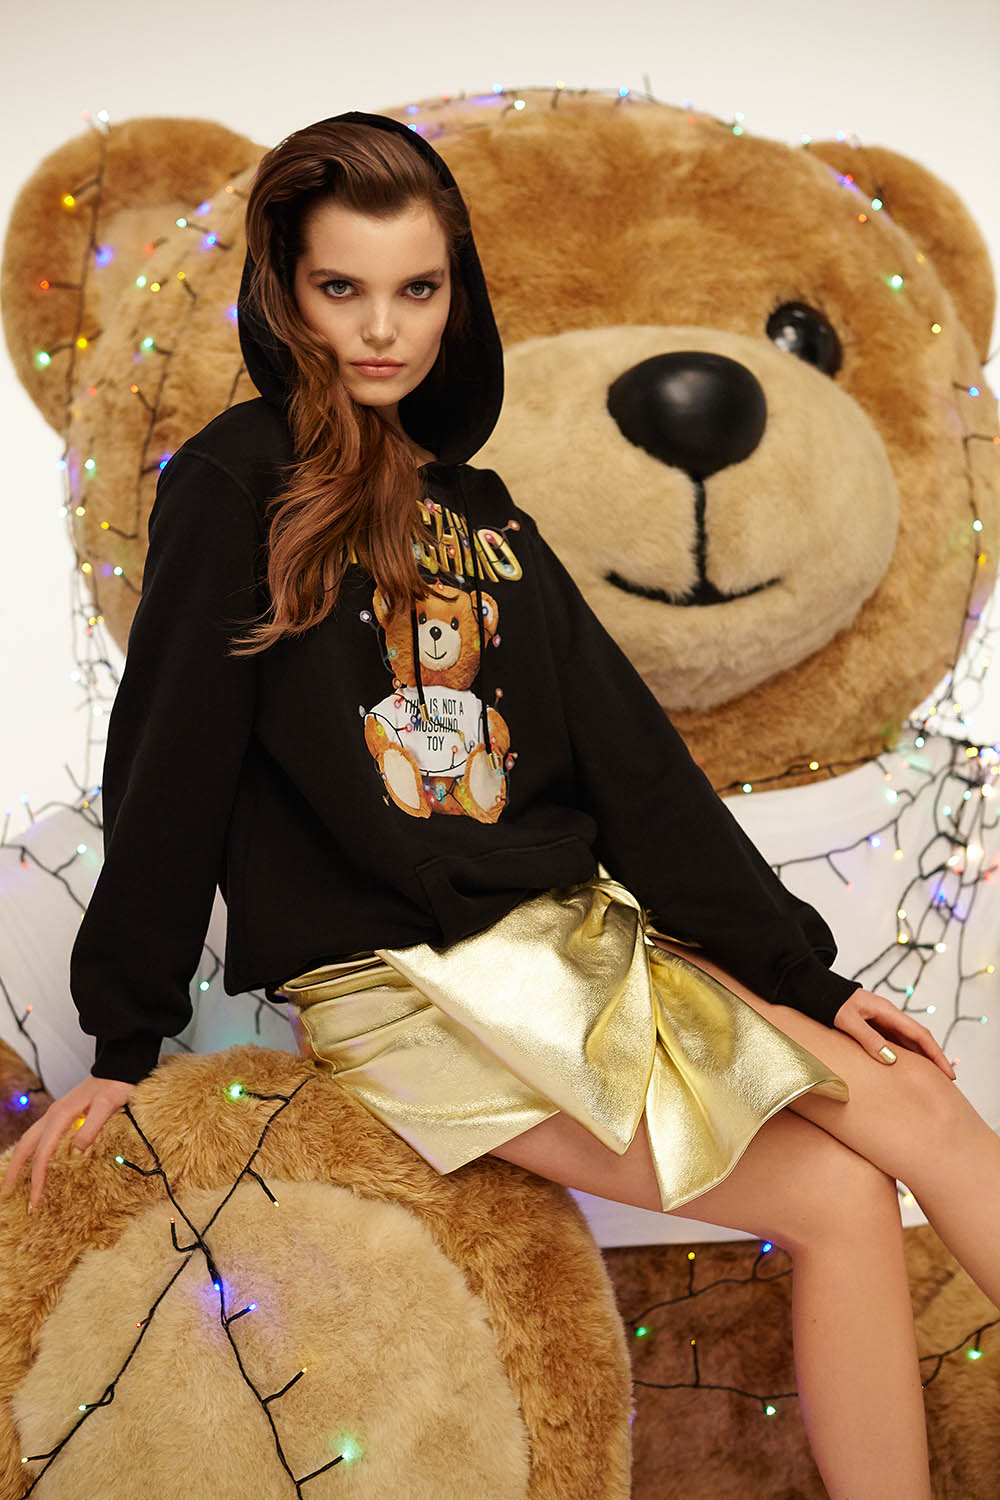 MOSCHINO TEDDY HOLIDAY  - IMAGES (1)